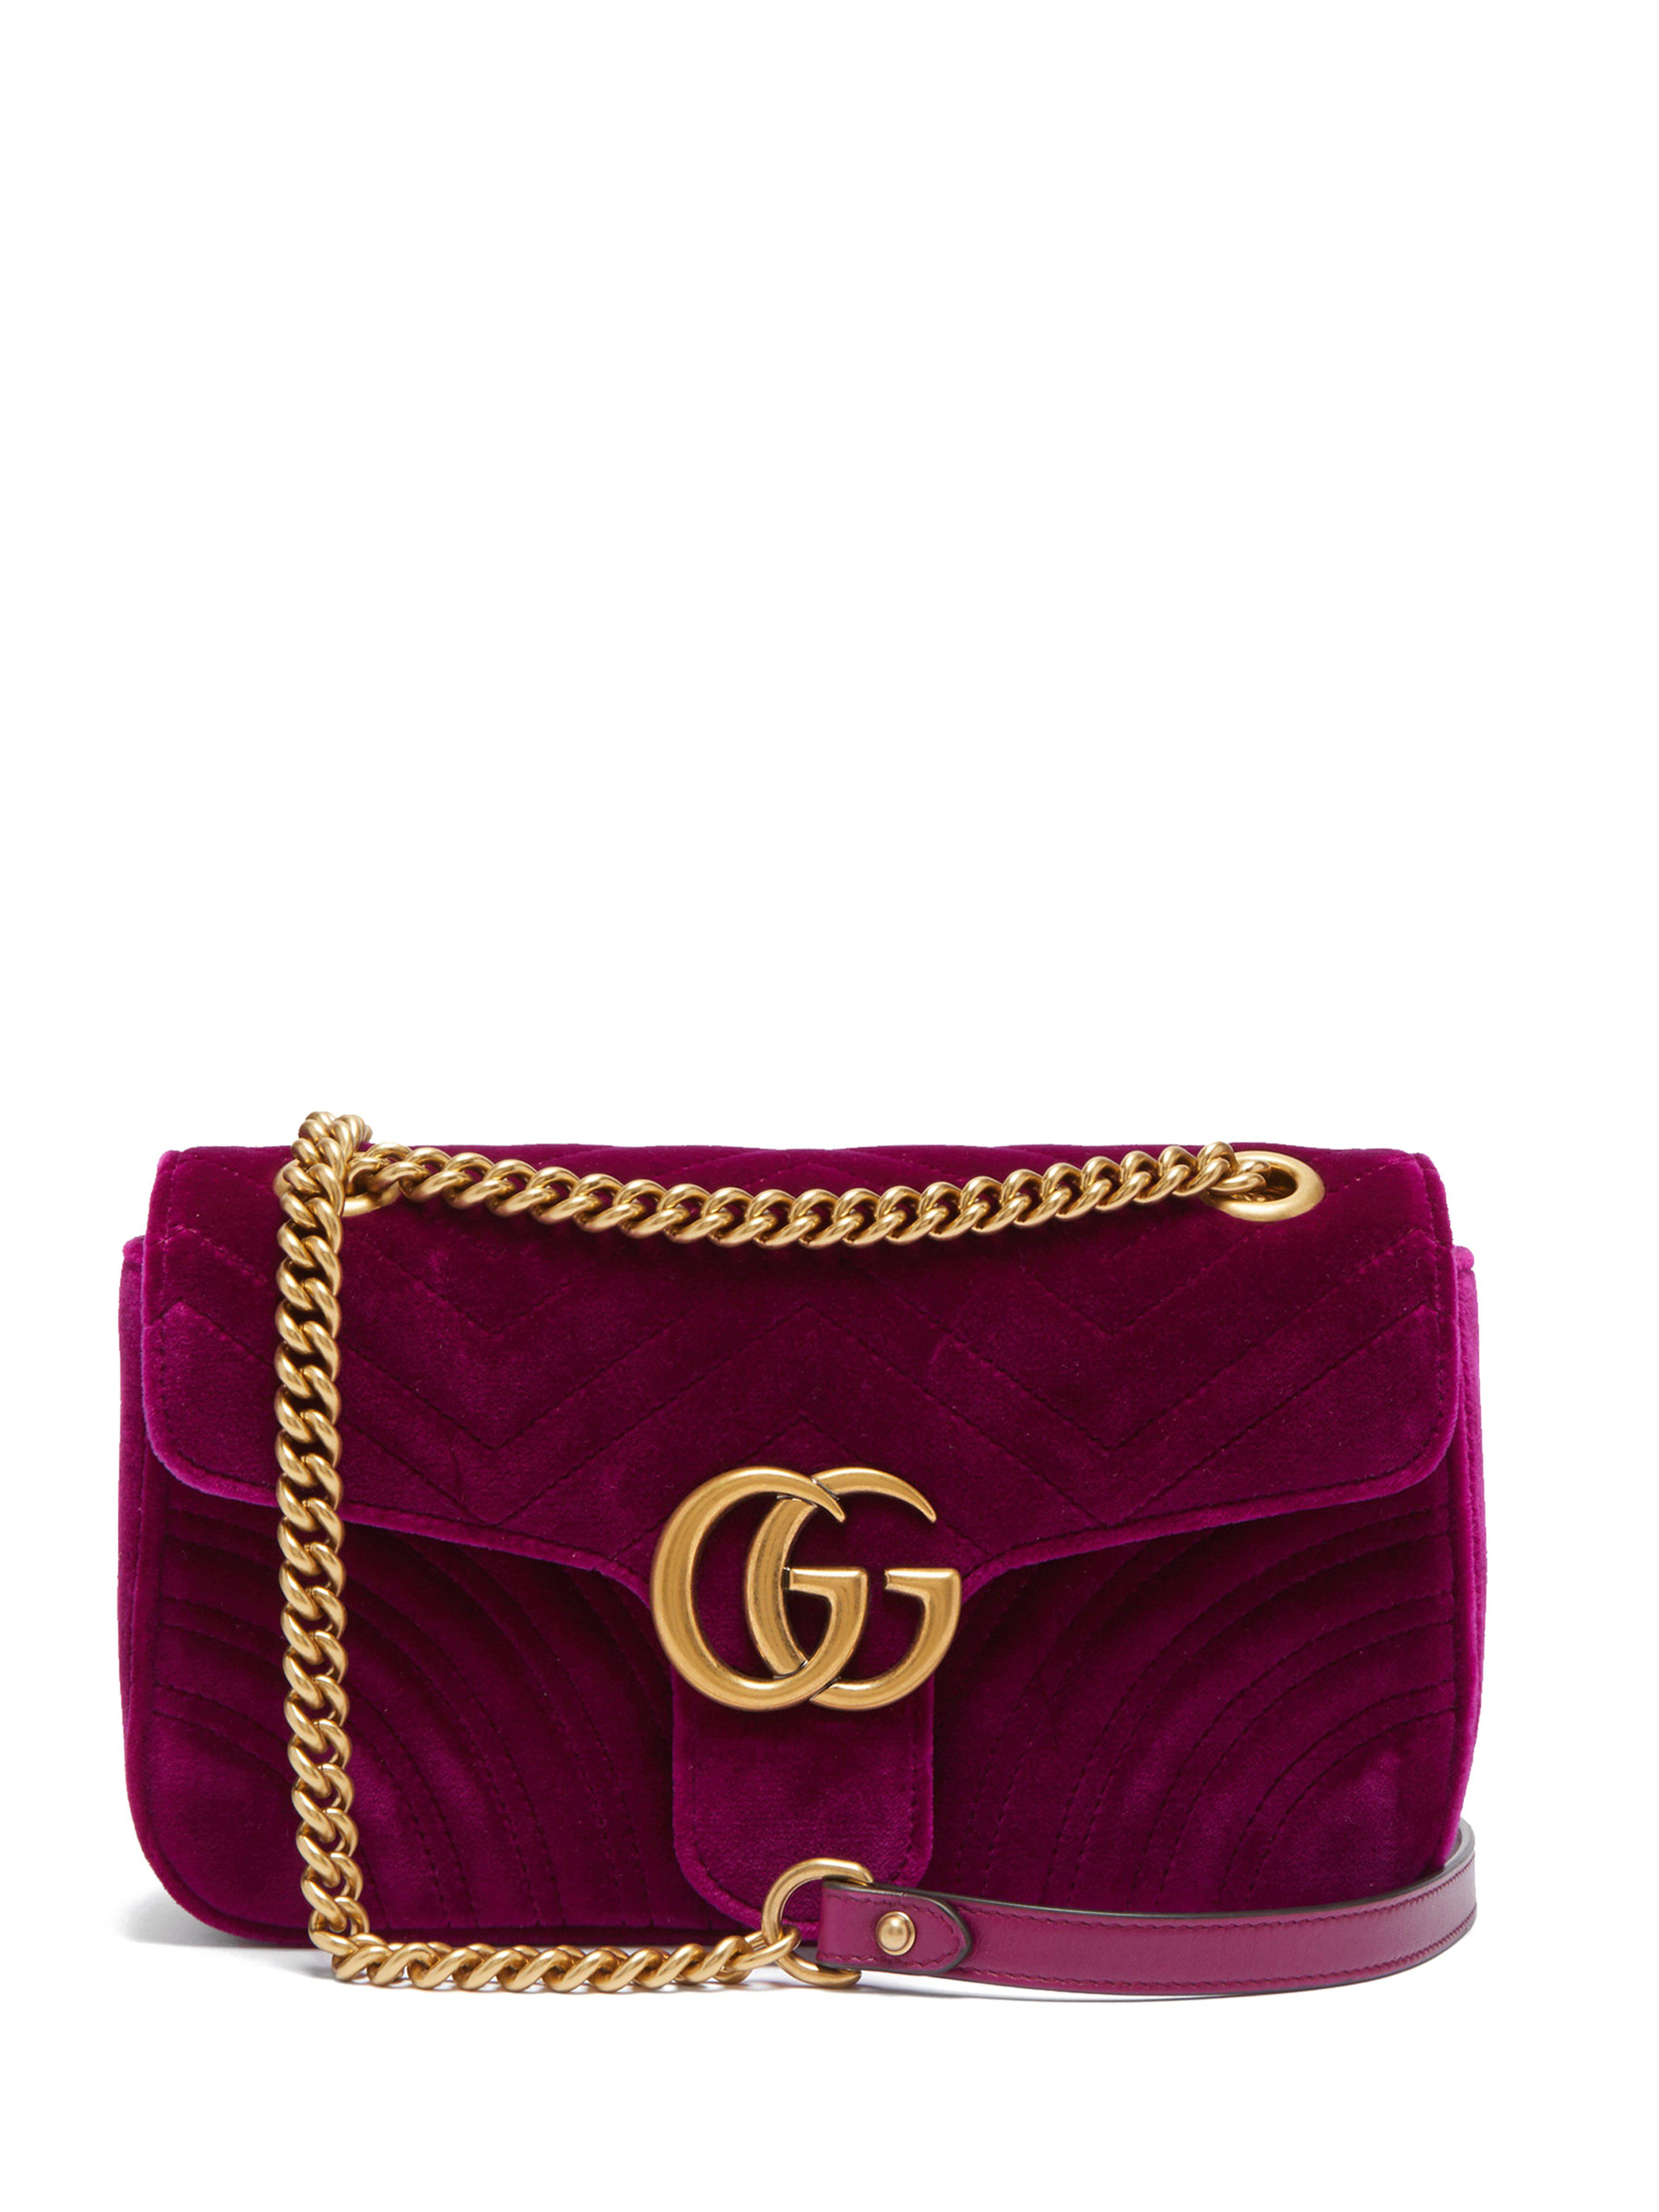 d24cc80557b6 Gucci Gg Marmont Small Quilted Velvet Cross Body Bag - Save 24% - Lyst